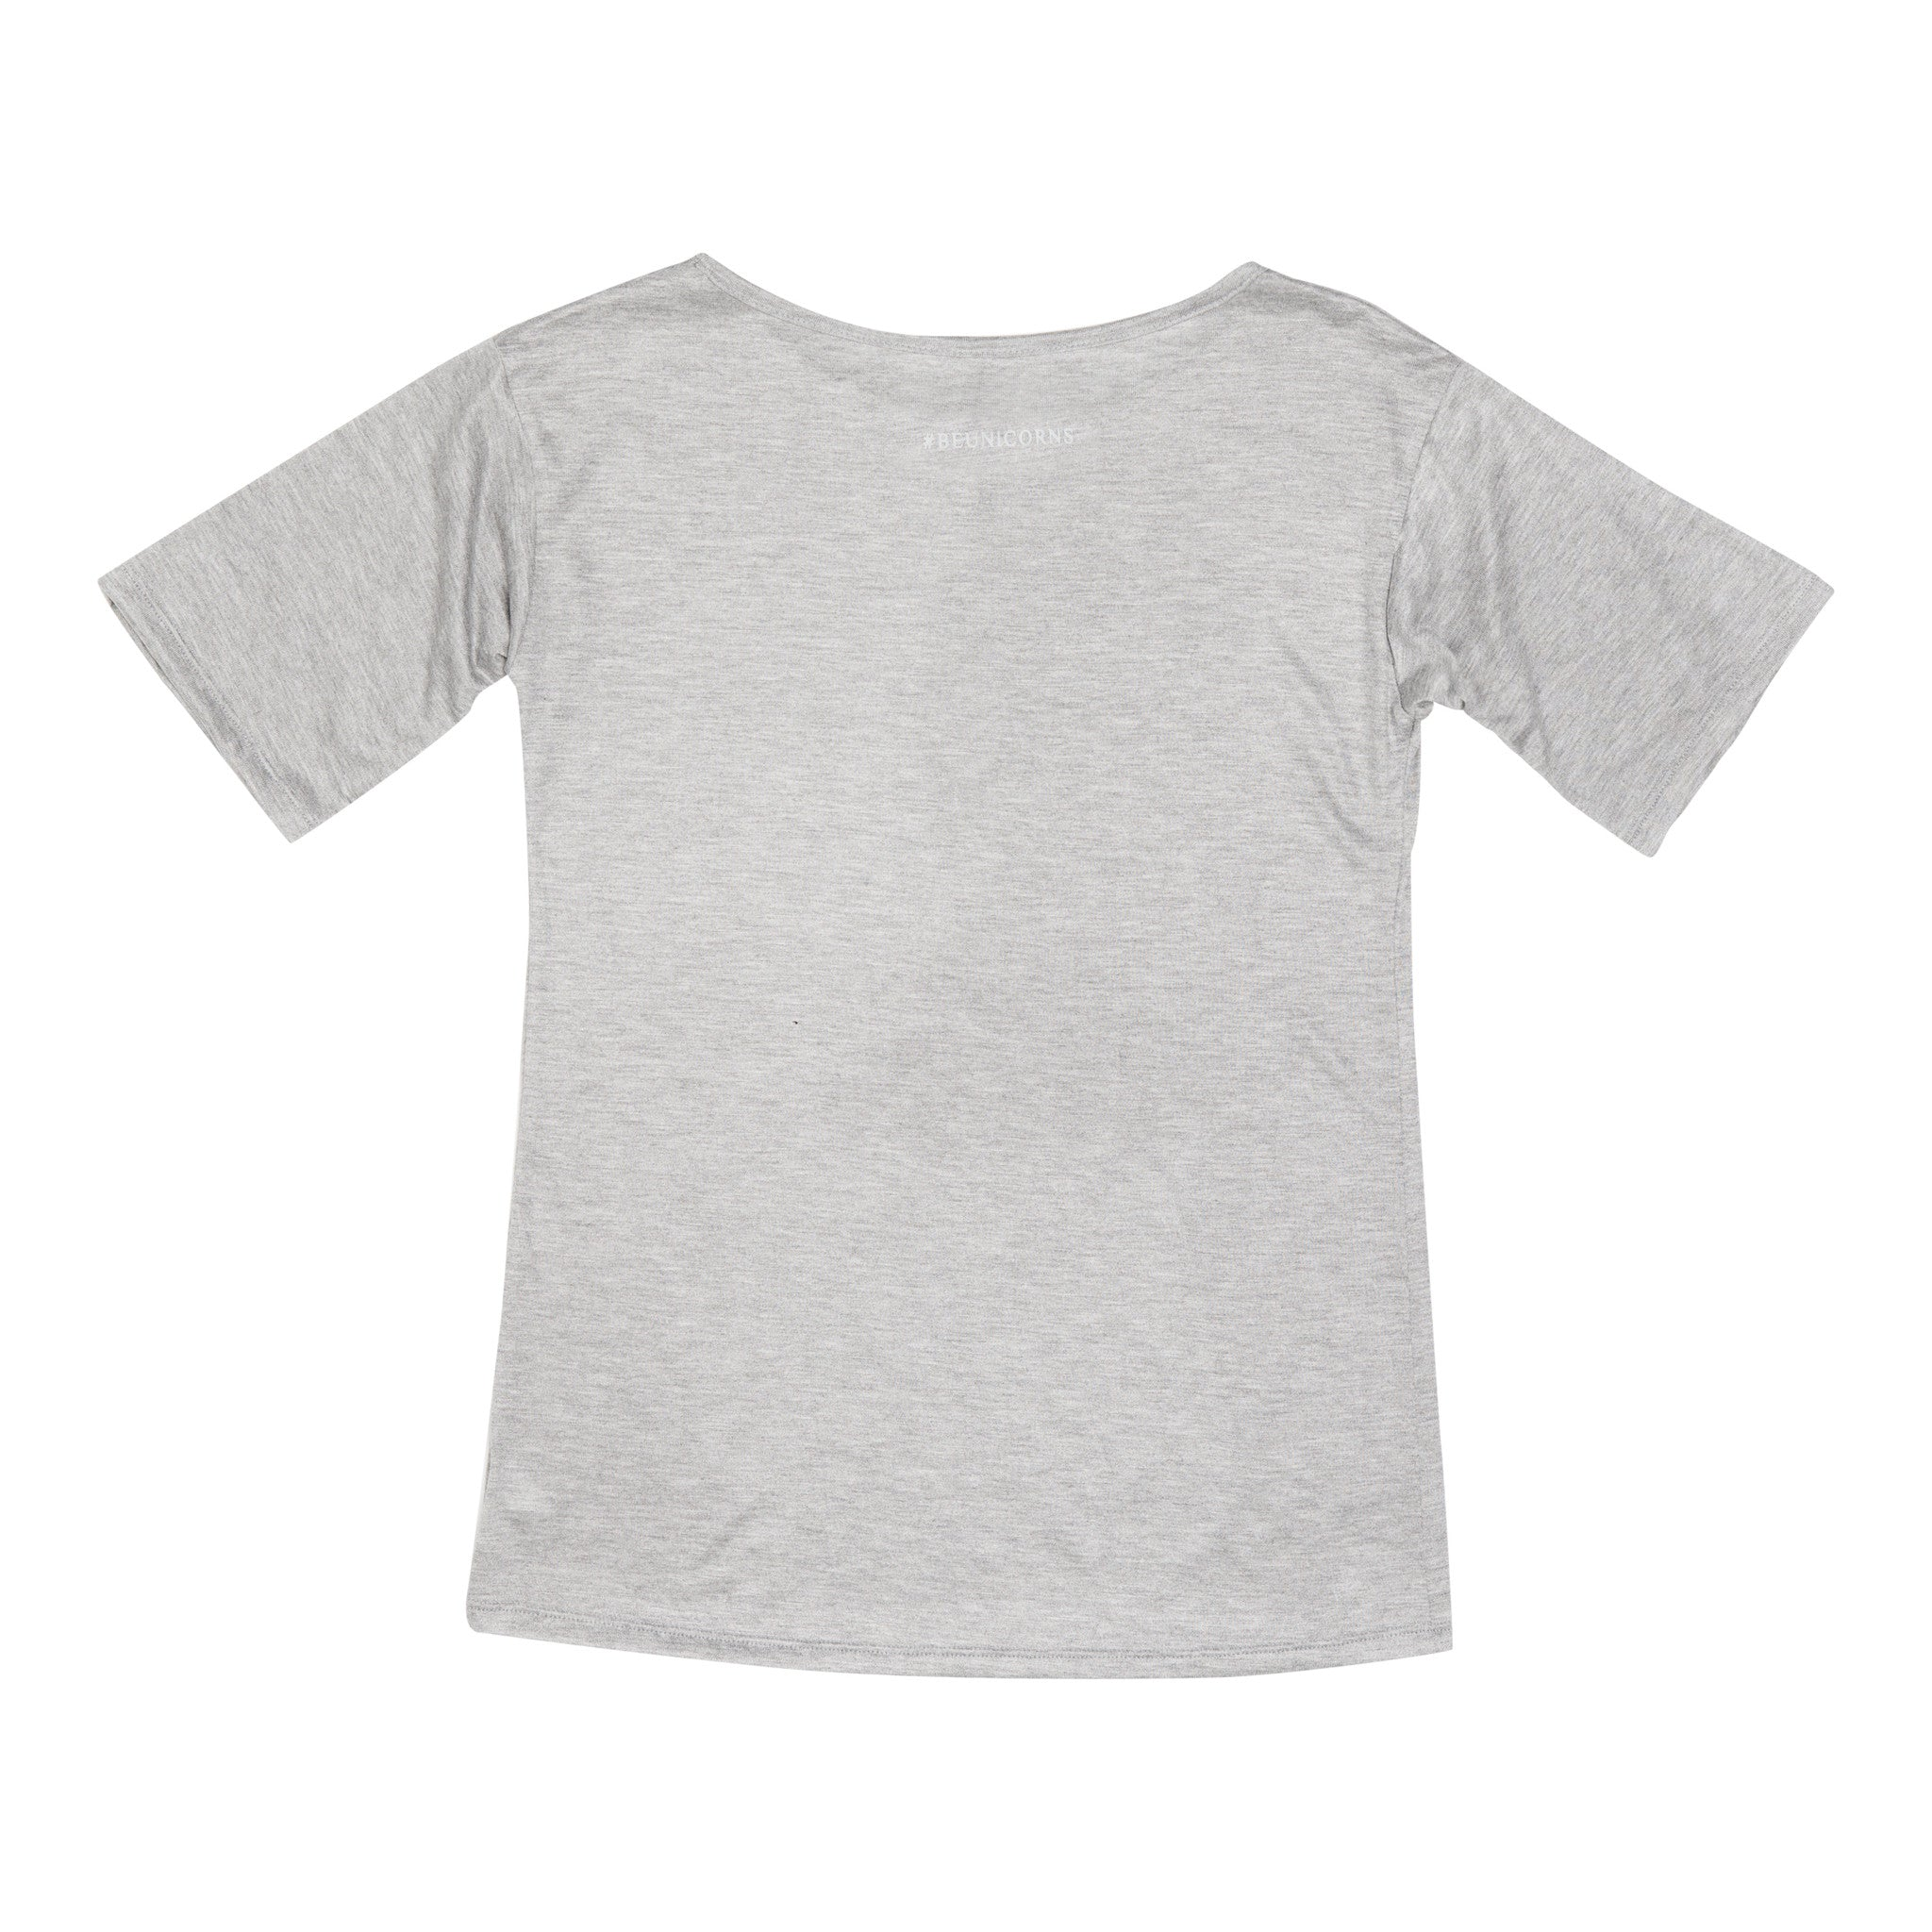 More-glitter-Women-T-shirt-Eco-Comfy